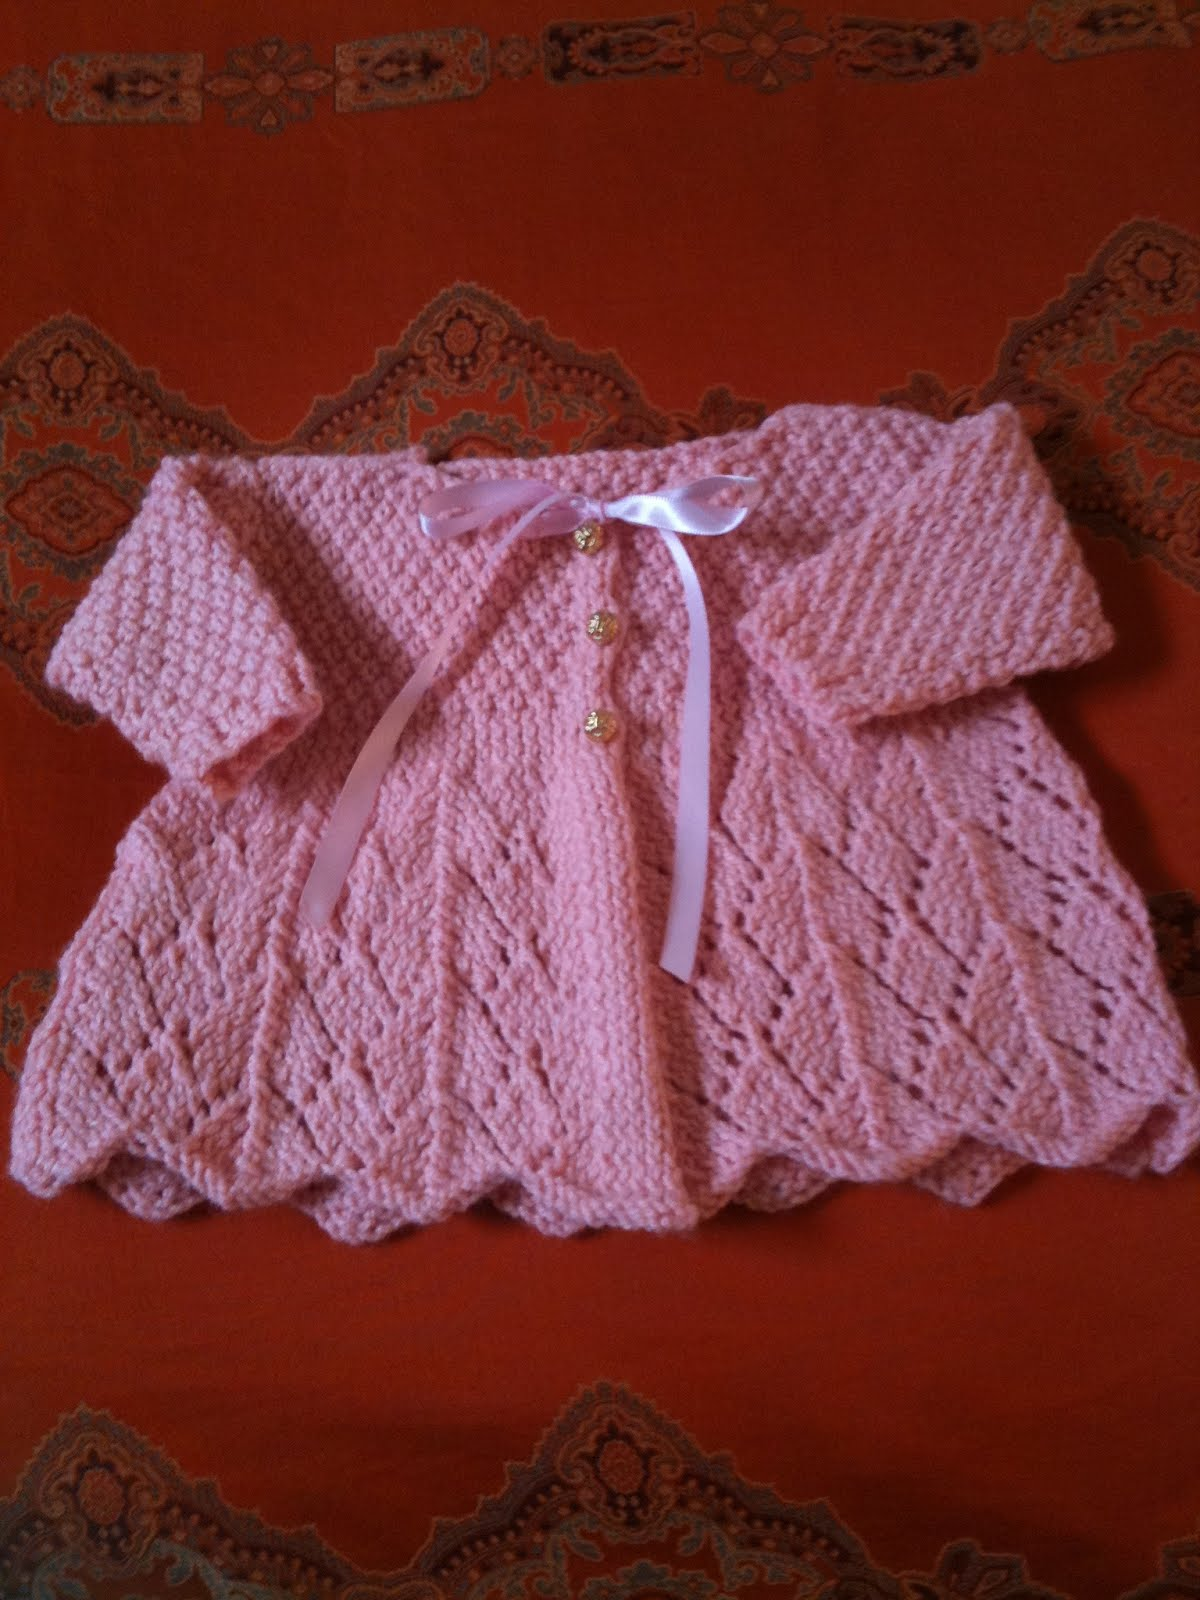 Knitting Pattern Baby Jacket : La Dolce Duchessa: Lace Baby Sweater